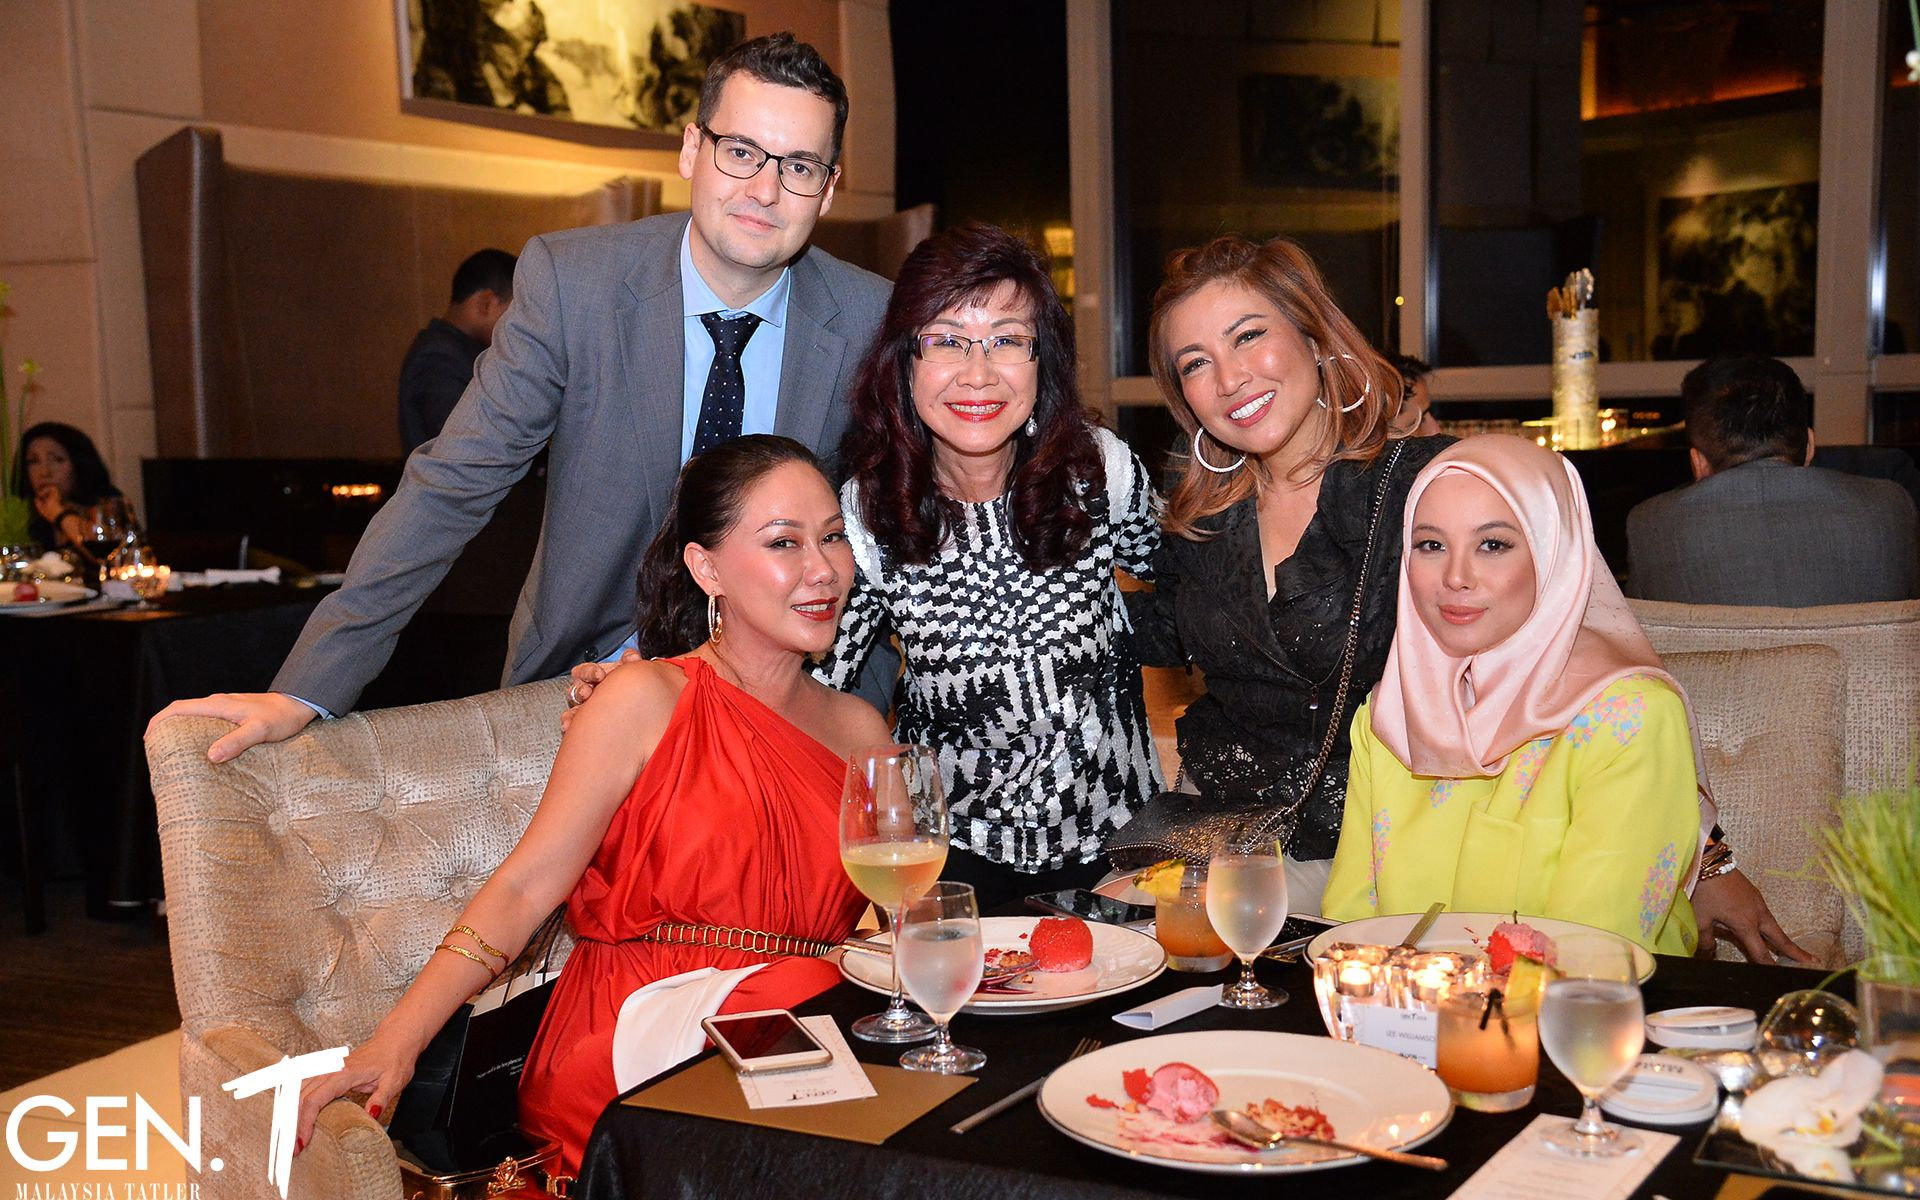 Lee Williamson, Michele Kwok, Florence Fang, Puan Sri Tiara Jacqelina, Datin Vivy Yusof